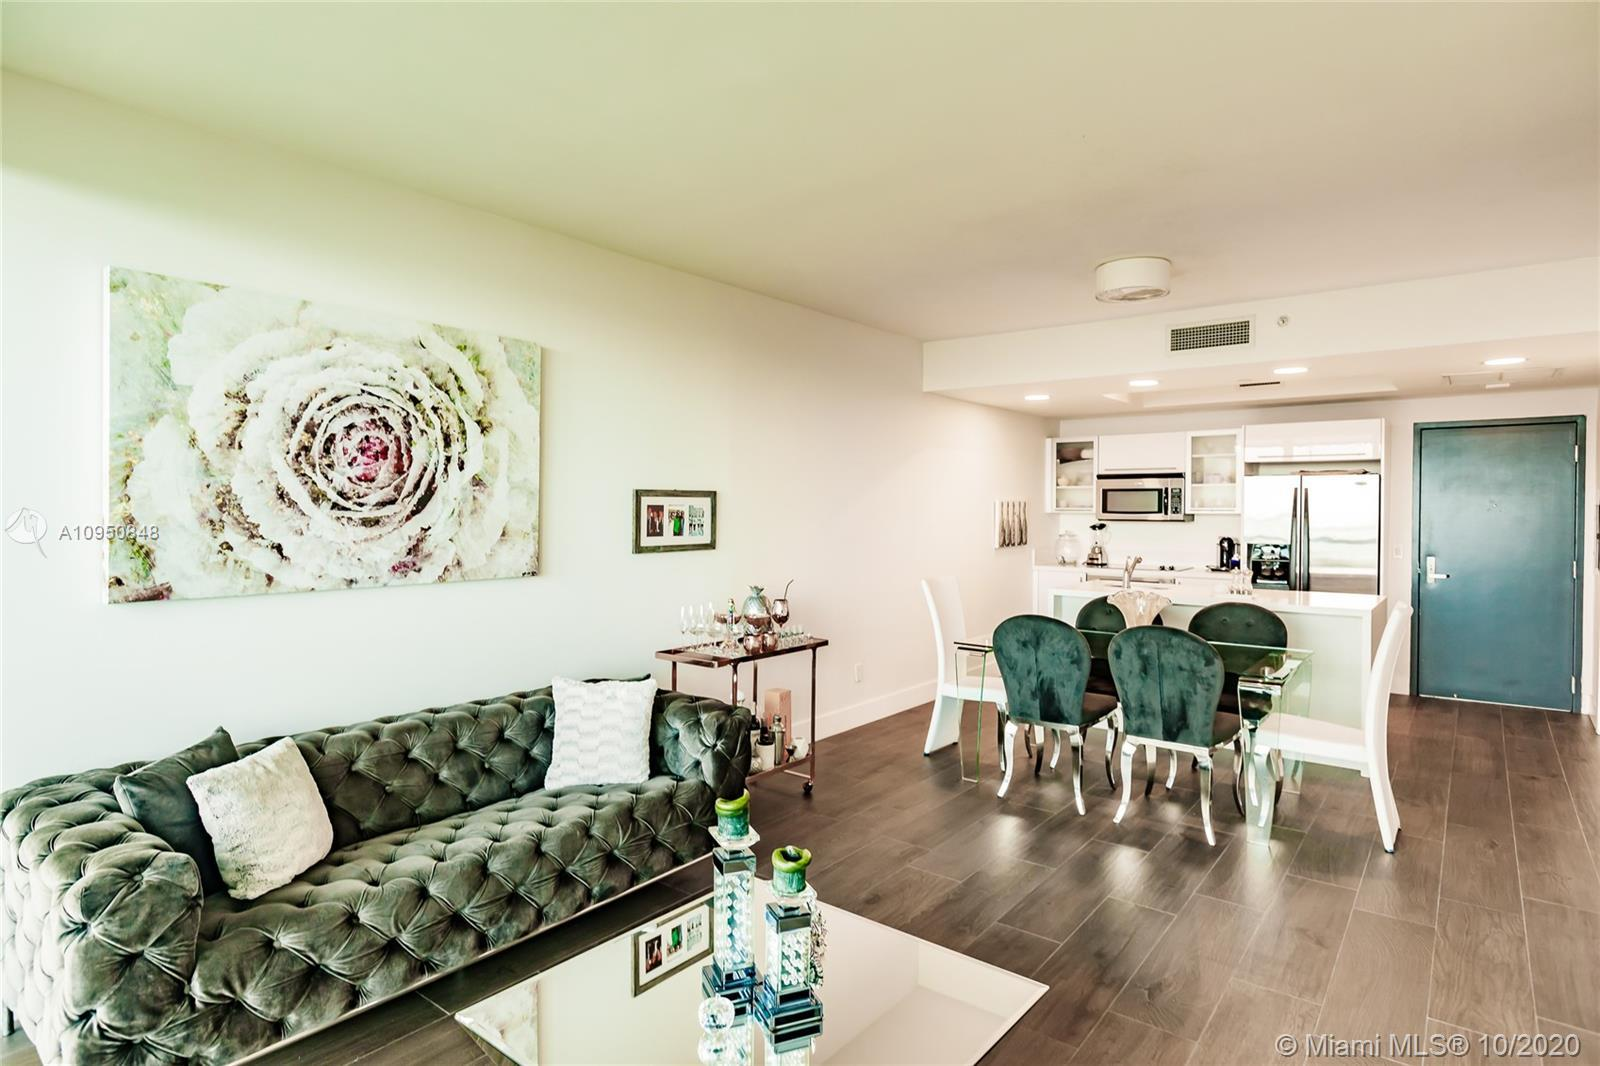 If you want updated, charming with stunning views ...it is the unit for you to call home....The owne